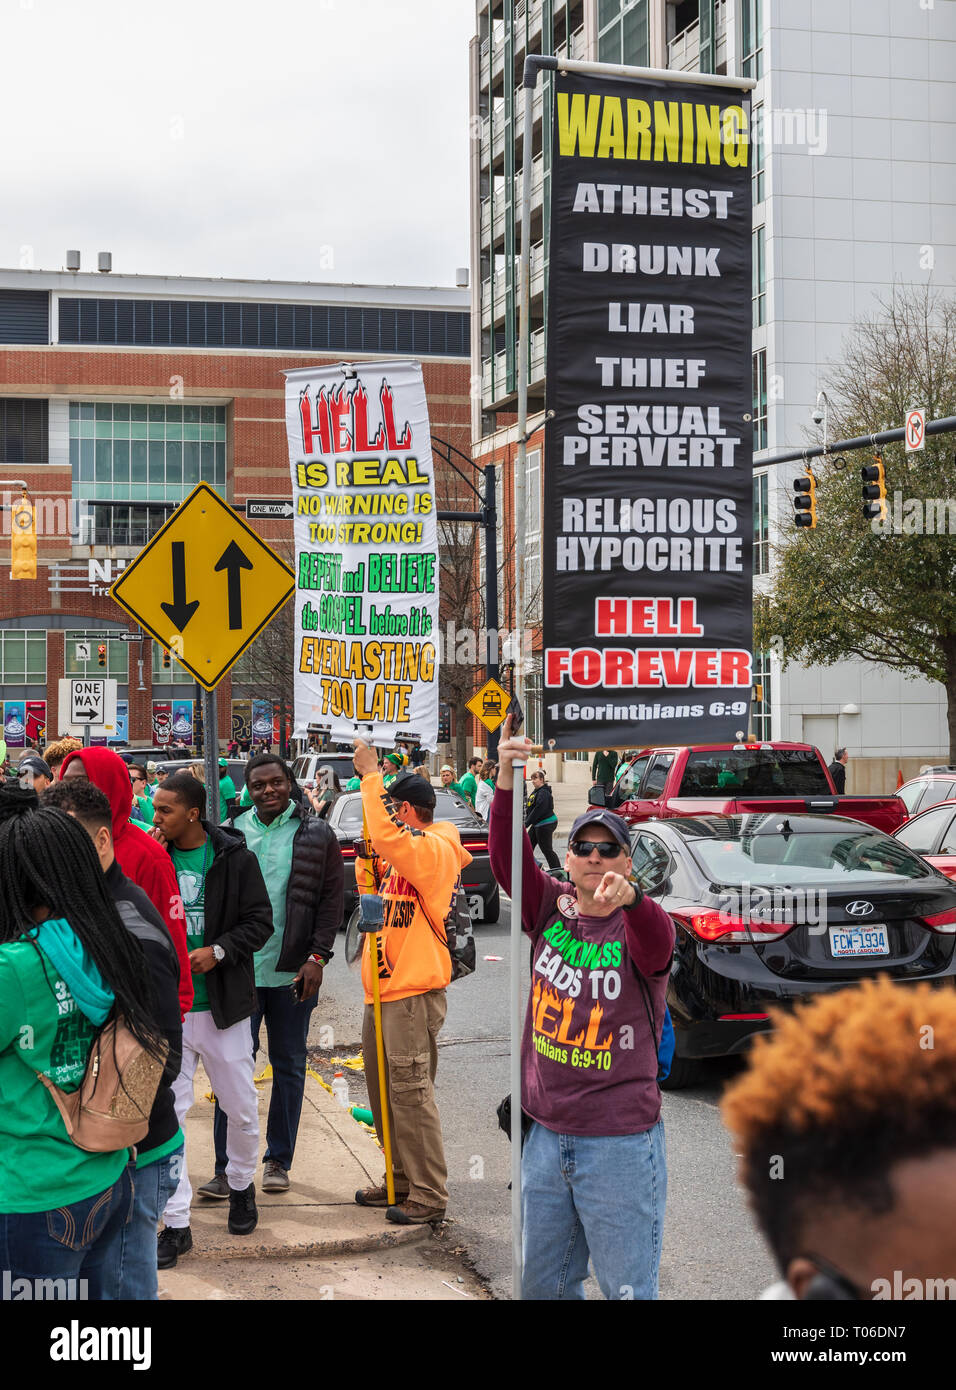 """CHARLOTTE, NC, USA-3/16/19: A man points at camera while holding a sign listing behaviors which mean """"Hell Forever"""". Stock Photo"""